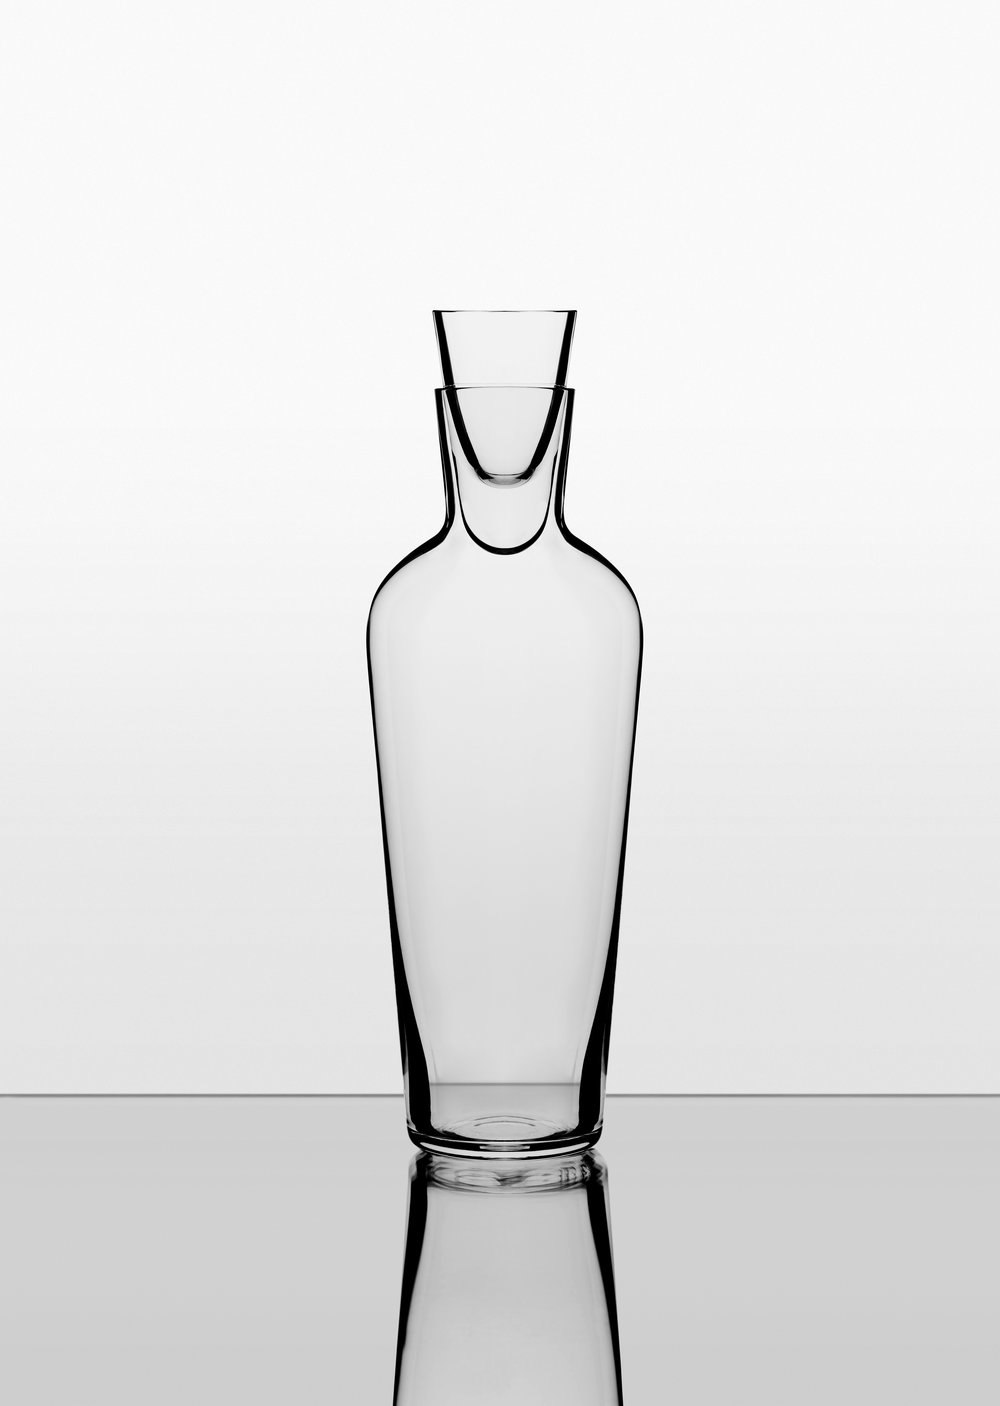 The Old Wine Decanter. - This bottle-shaped decanter allows you to decant a mature wine off its sediment while ensuring that it is not exposed to too much harmful oxygen.The refined shape follows the form of the Wine Glass and the beautiful mouth-blown stopper adds an element of contemporary design to your table.